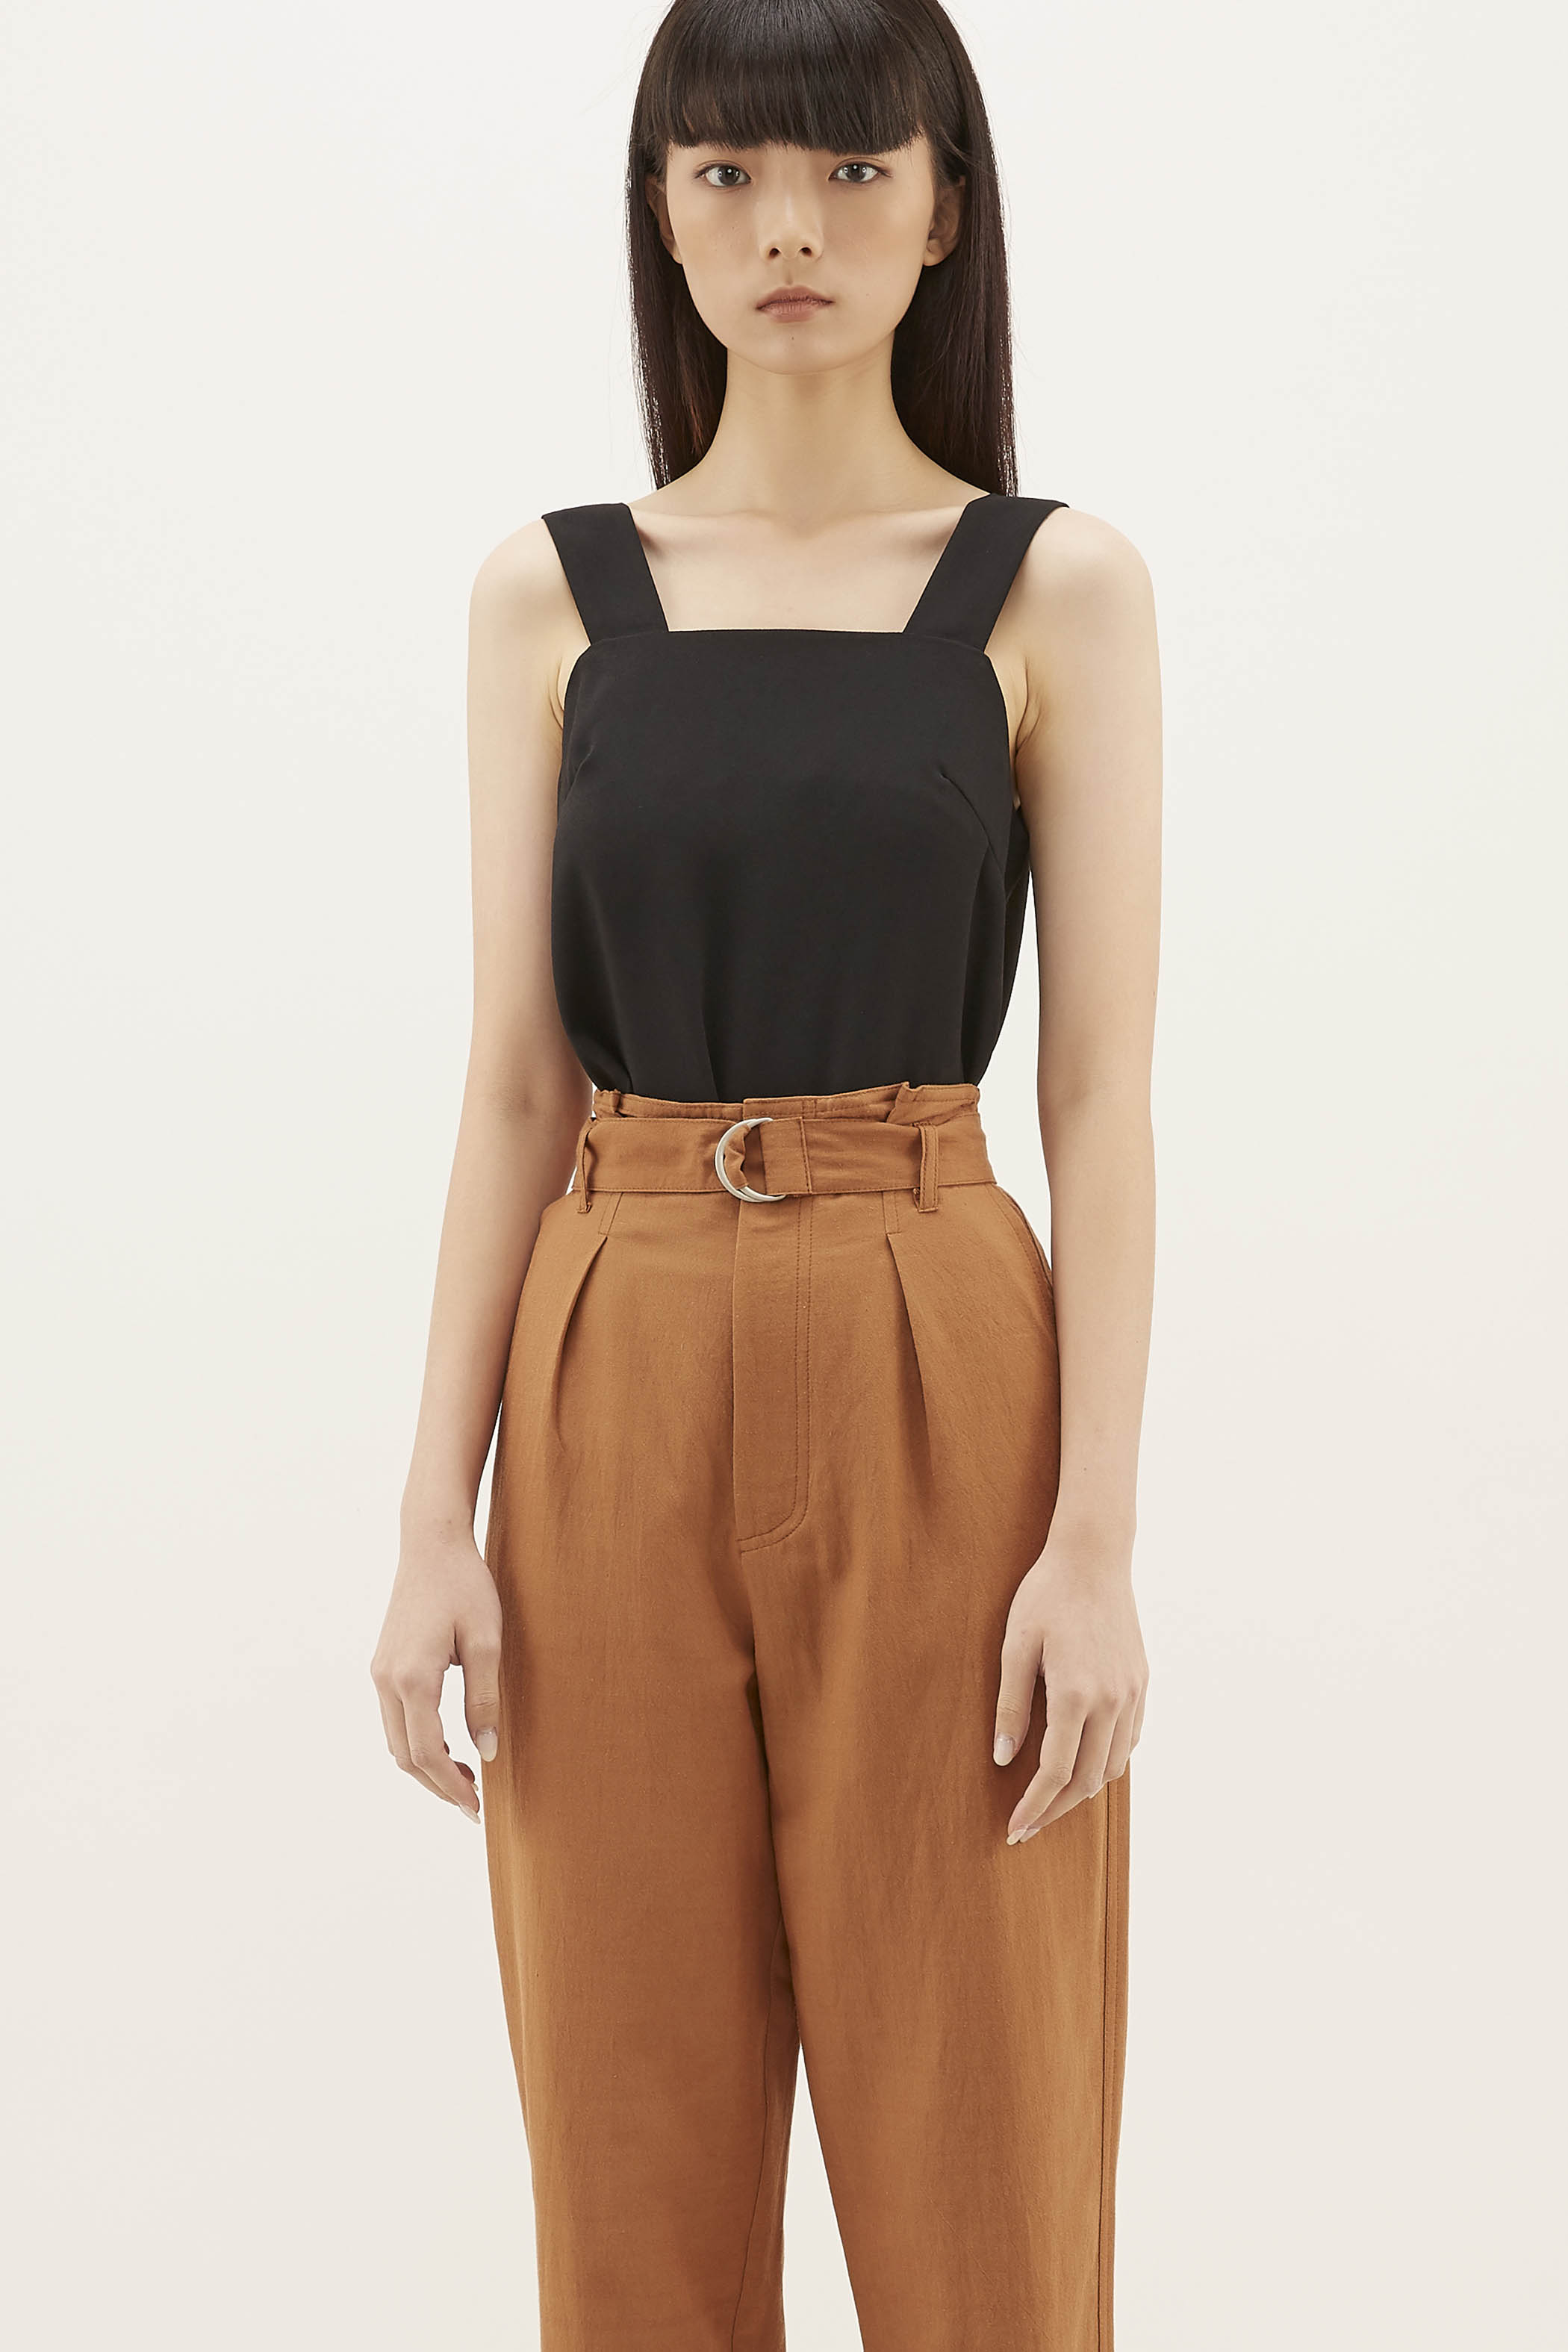 Talesha Square-neck Top